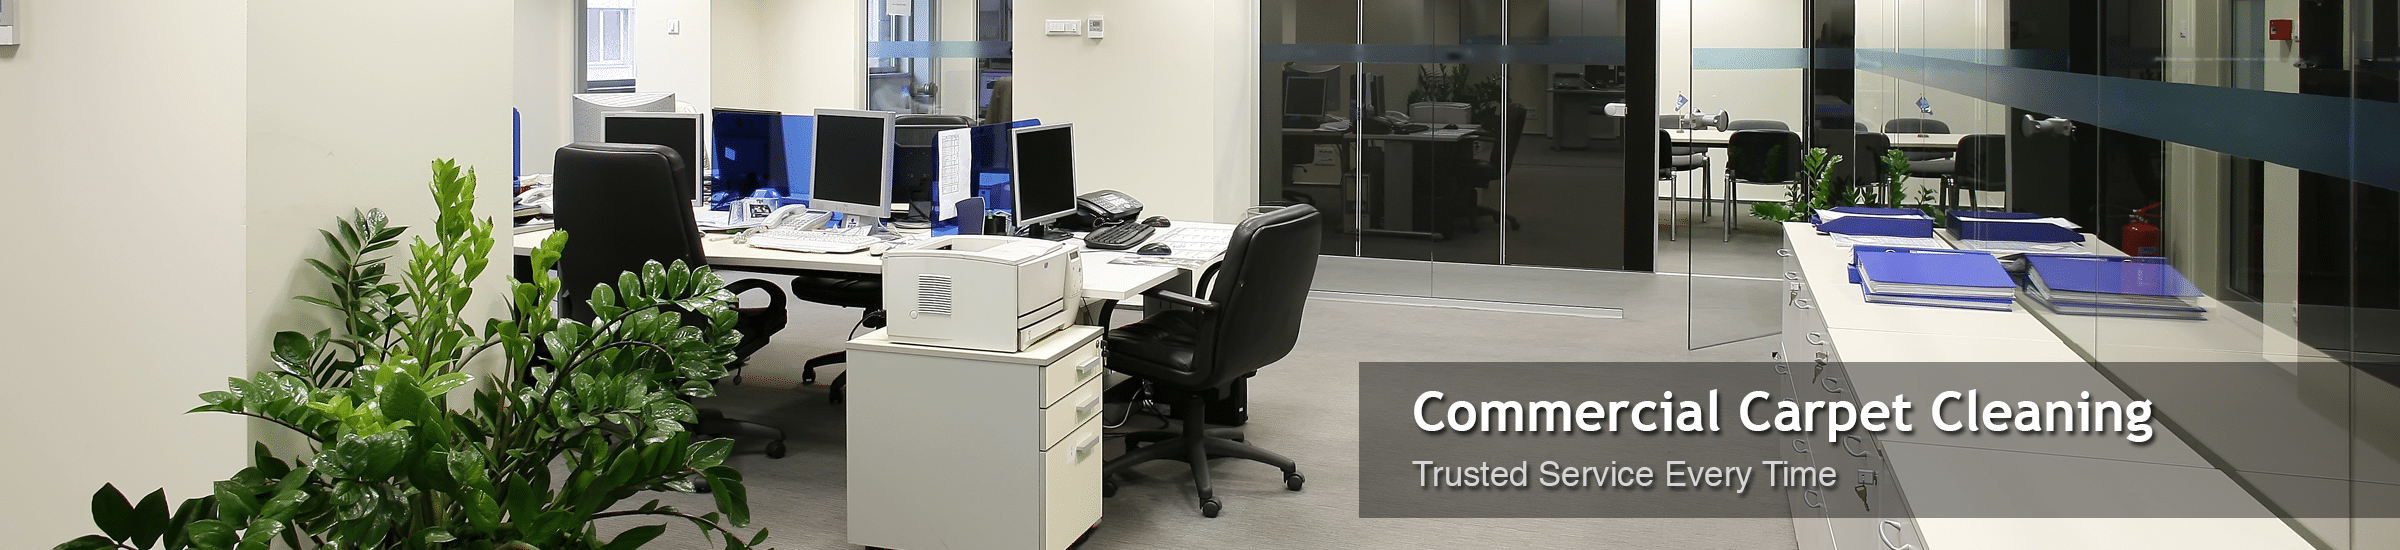 comm-cc—trusted-service-every-time